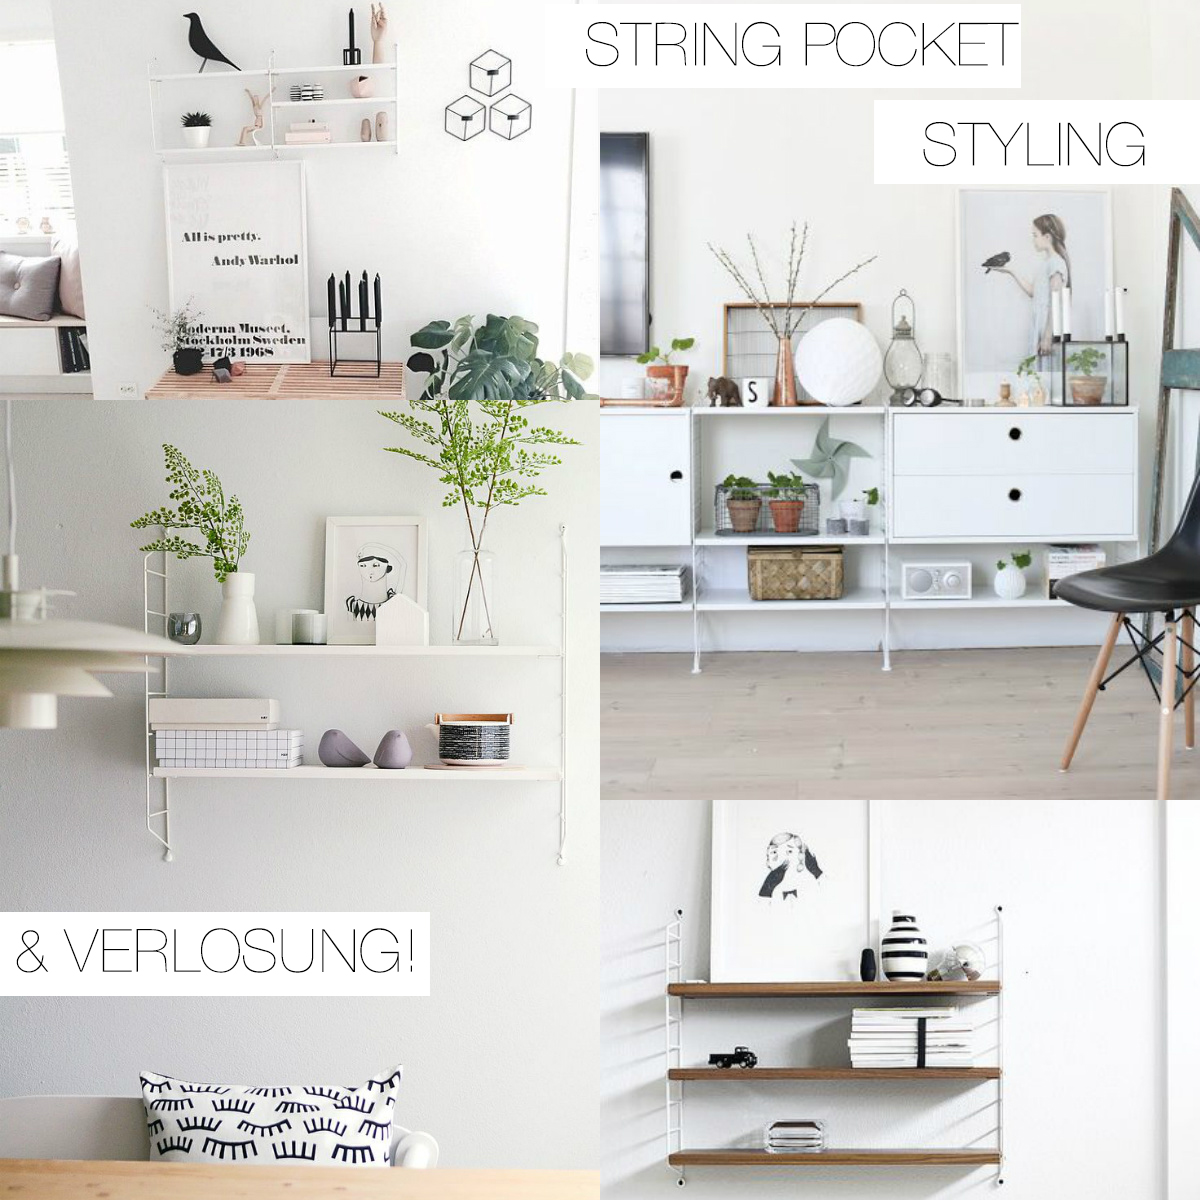 Elegant Collage String Pocket Regal Verlosung Inkl.